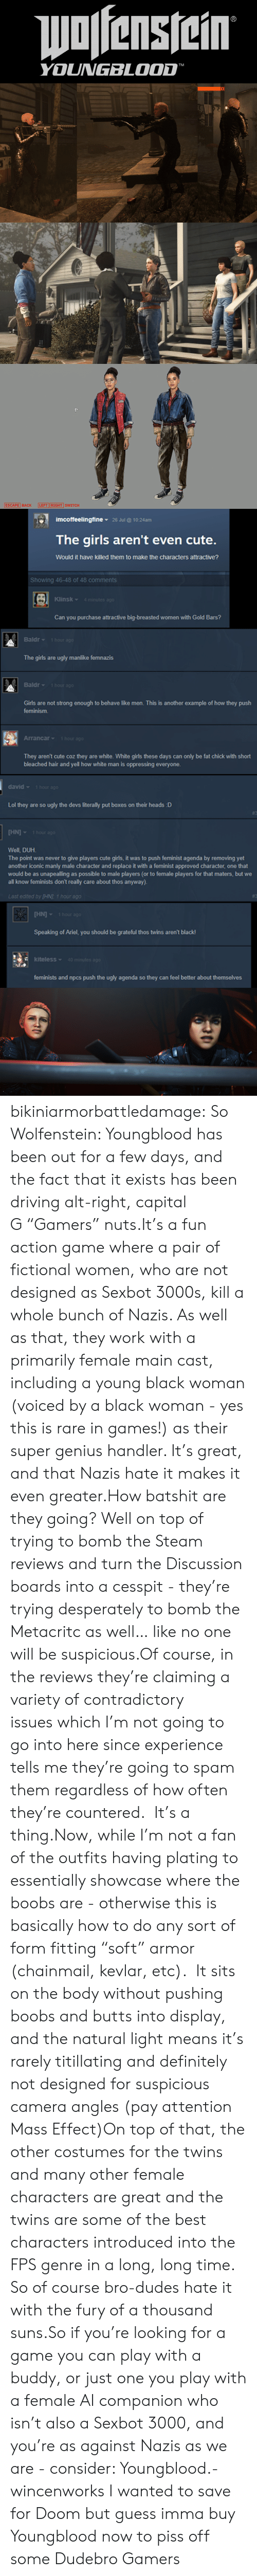 "Feminism: Wofenstein  YOUNGBLOOD  5   MAR  ESCAPE BACK  LEFT RIGHT SWITCH   26 Jul@ 10:24am  imcoffeelingfine  The girls aren't even cute.  Would it have killed them to make the characters attractive?  Showing 46-48 of 48 comments  Klinsk  4 minutes ag0  Can you purchase attractive big-breasted women with Gold Bars?  Baldr  1 hour ago  The girls are ugly manlike femnazis  Baldr  1 hour ago  Girls are not strong enough to behave like men. This is another example of how they push  feminism  Arrancar  1 hour ago  They aren't cute coz they are white. White girls these days can only be fat chick with short  bleached hair and yell how white man is oppressing everyone.  david  1 hour ago  Lol they are so ugly the devs literally put boxes on their heads :D  #3  [HN]  1 hour ago  Well, DUH  The point was never to give players cute girls, it was to push feminist agenda by removing yet  another iconic manly male character and replace it with a feminist approved character, one that  would be as unapealling as possible to male players (or to female players for that maters, but we  all know feminists don't really care about thos anyway).  Last edited by [HN 1 hour ago  #3  [HN]  1 hour ago  Speaking of Ariel, you should be grateful thos twins aren't black  kiteless  40 minutes ago  feminists and npcs push the ugly agenda so they can feel better about themselves   30 bikiniarmorbattledamage:  So Wolfenstein: Youngblood has been out for a few days, and the fact that it exists has been driving alt-right, capital G ""Gamers"" nuts.It's a fun action game where a pair of fictional women, who are not designed as Sexbot 3000s, kill a whole bunch of Nazis. As well as that, they work with a primarily female main cast, including a young black woman (voiced by a black woman - yes this is rare in games!) as their super genius handler. It's great, and that Nazis hate it makes it even greater.How batshit are they going? Well on top of trying to bomb the Steam reviews and turn the Discussion boards into a cesspit - they're trying desperately to bomb the Metacritc as well… like no one will be suspicious.Of course, in the reviews they're claiming a variety of contradictory issues which I'm not going to go into here since experience tells me they're going to spam them regardless of how often they're countered.  It's a thing.Now, while I'm not a fan of the outfits having plating to essentially showcase where the boobs are - otherwise this is basically how to do any sort of form fitting ""soft"" armor (chainmail, kevlar, etc).  It sits on the body without pushing boobs and butts into display, and the natural light means it's rarely titillating and definitely not designed for suspicious camera angles (pay attention Mass Effect)On top of that, the other costumes for the twins and many other female characters are great and the twins are some of the best characters introduced into the FPS genre in a long, long time.  So of course bro-dudes hate it with the fury of a thousand suns.So if you're looking for a game you can play with a buddy, or just one you play with a female AI companion who isn't also a Sexbot 3000, and you're as against Nazis as we are - consider: Youngblood.- wincenworks  I wanted to save for Doom but guess imma buy Youngblood now to piss off some Dudebro Gamers"